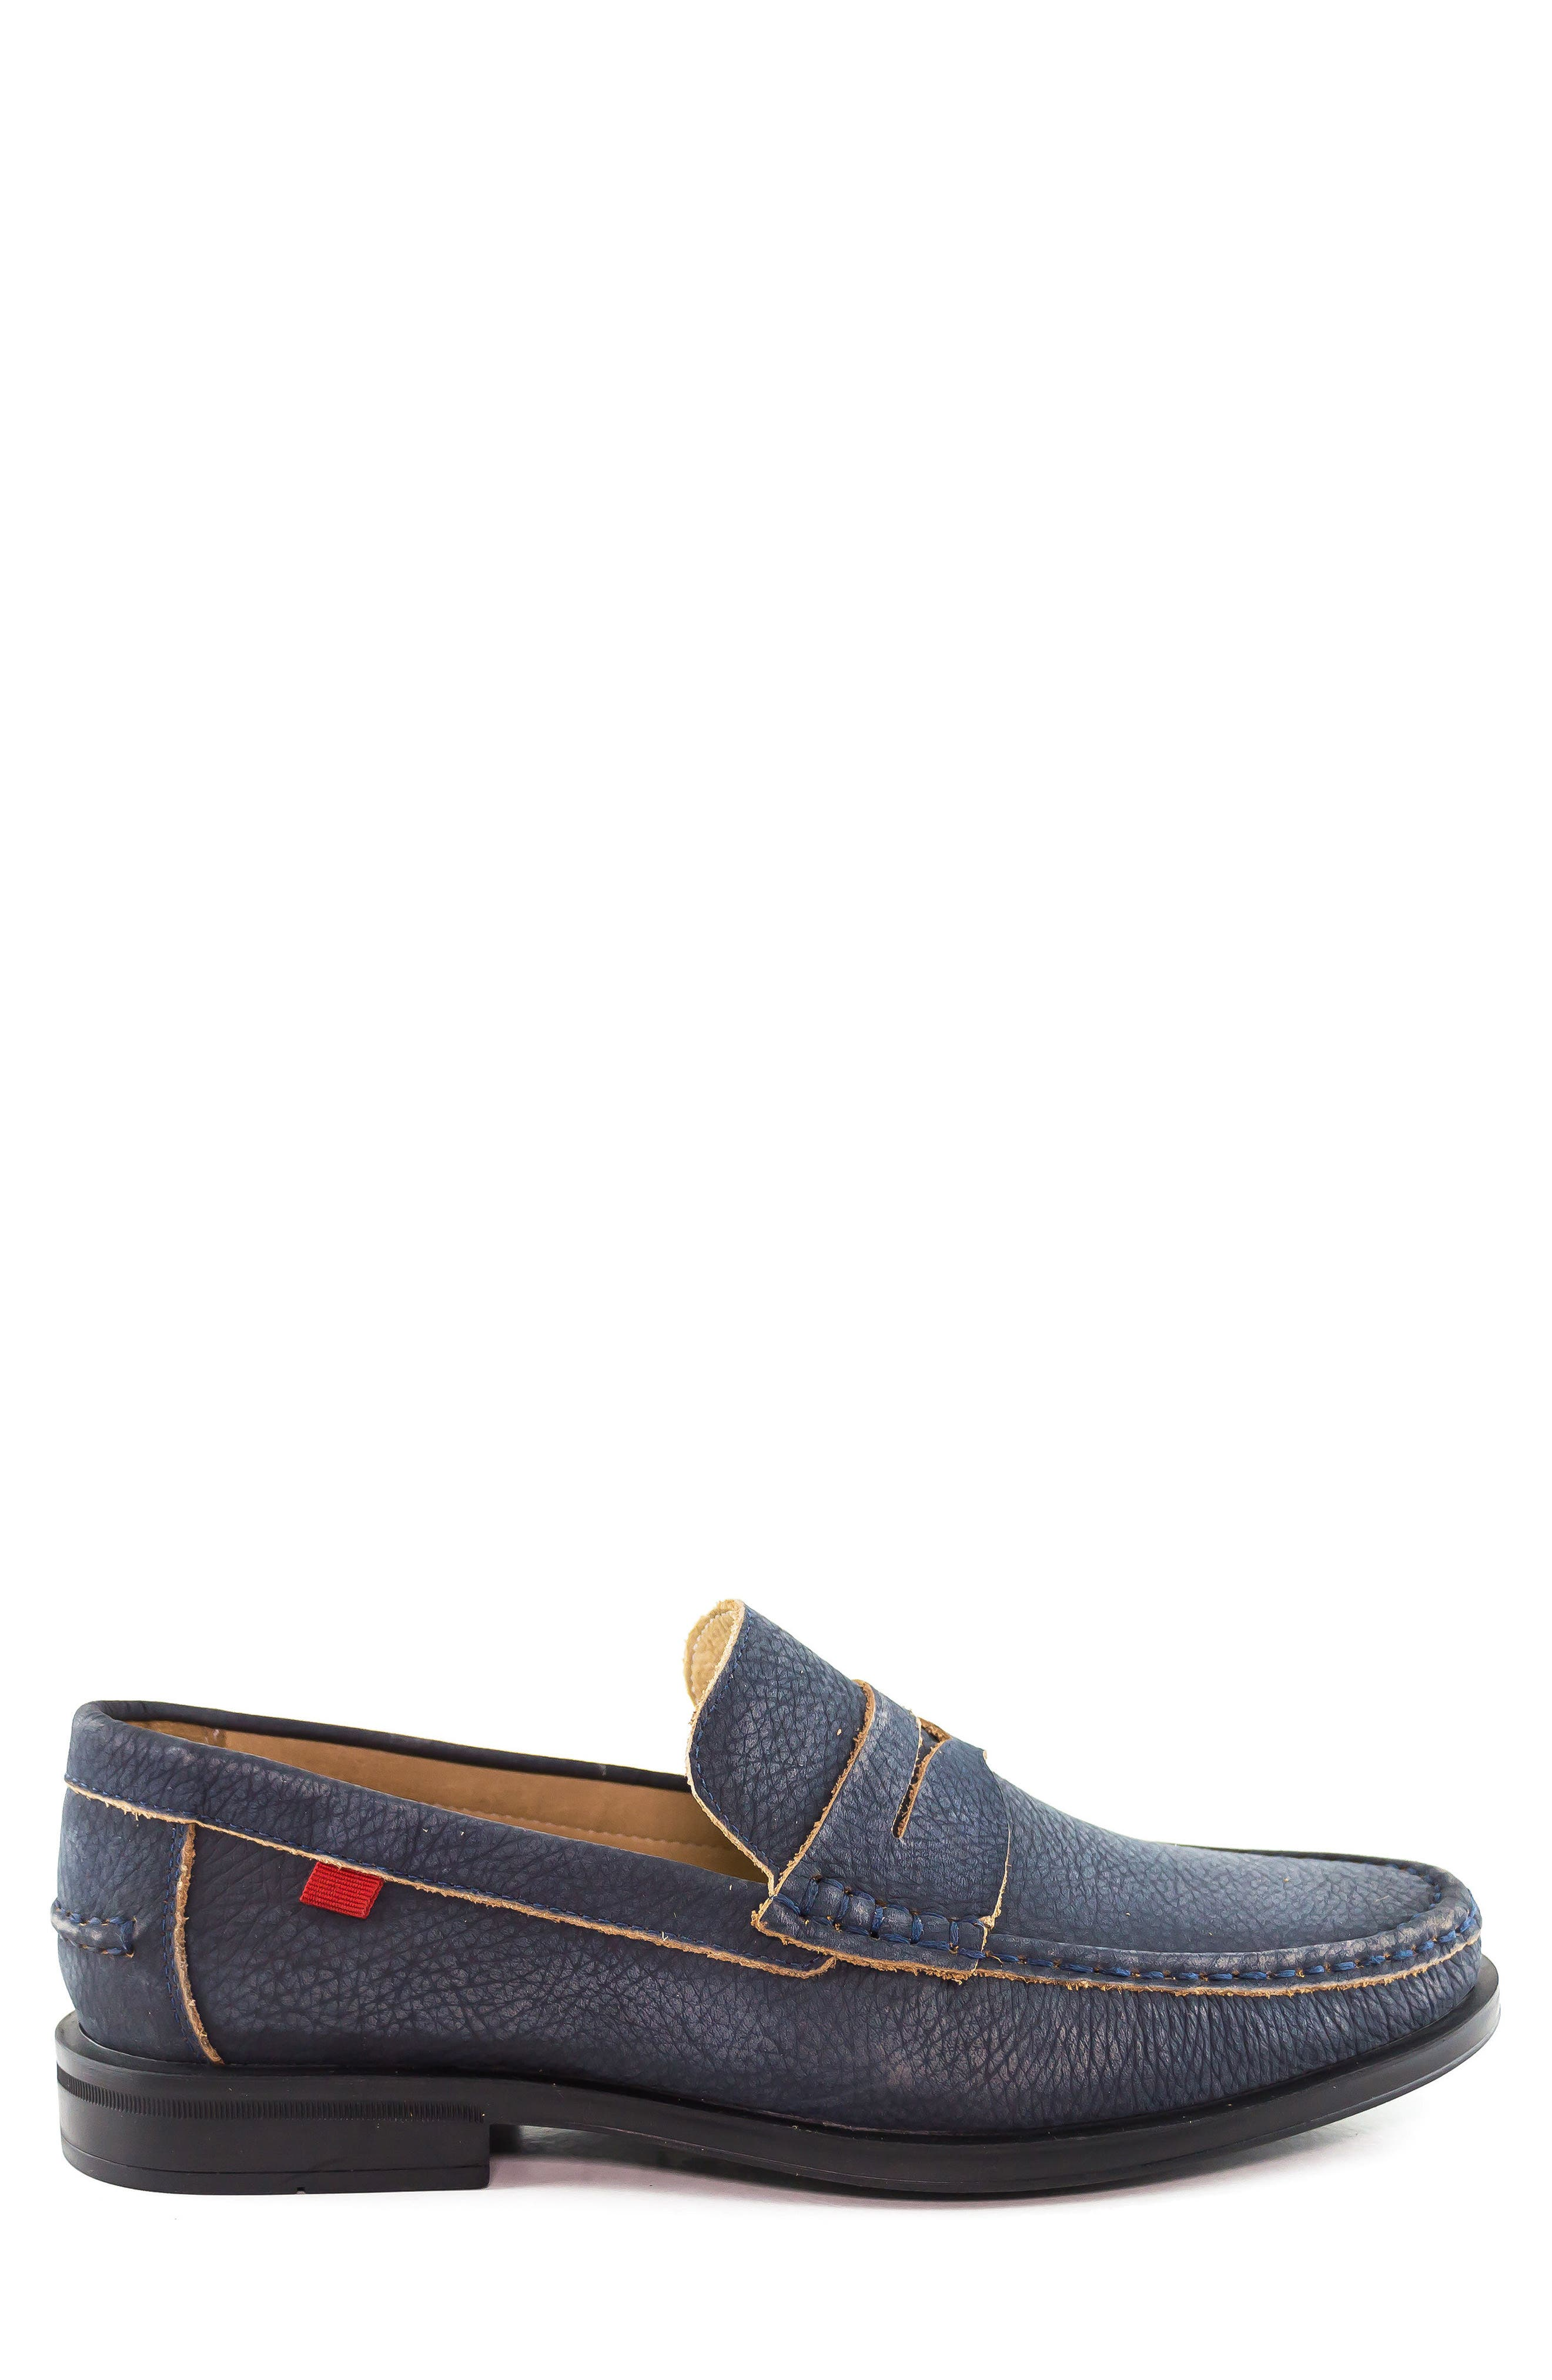 Cortland Penny Loafer,                             Alternate thumbnail 3, color,                             Navy